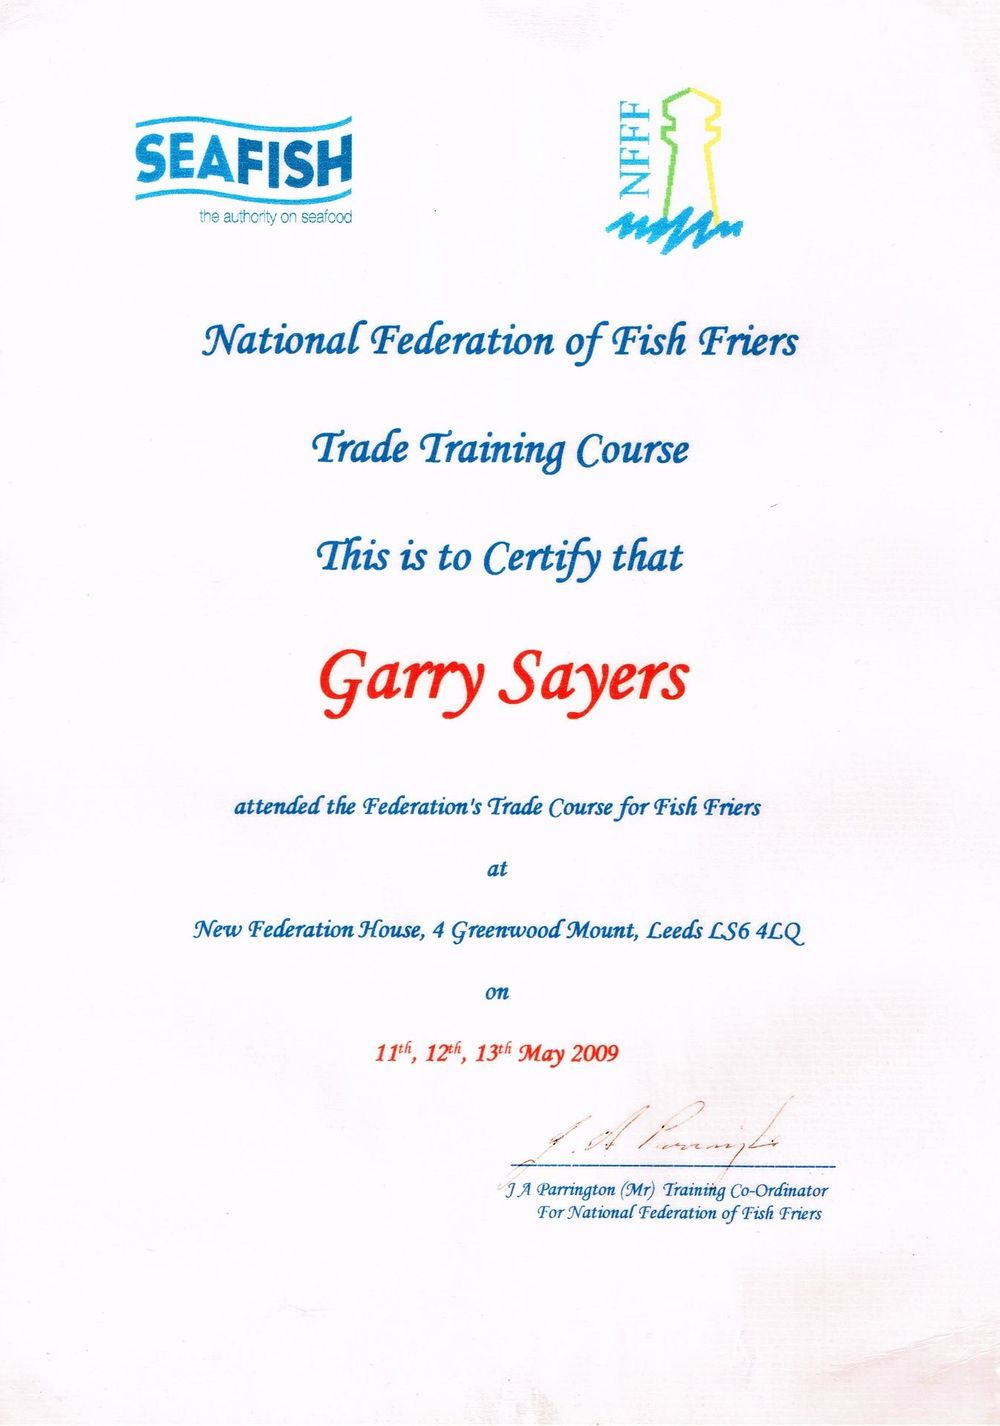 Our Seafish Training Course certificate from the National Federation of Fish Friers awarded to us for completing our training course ten years ago.